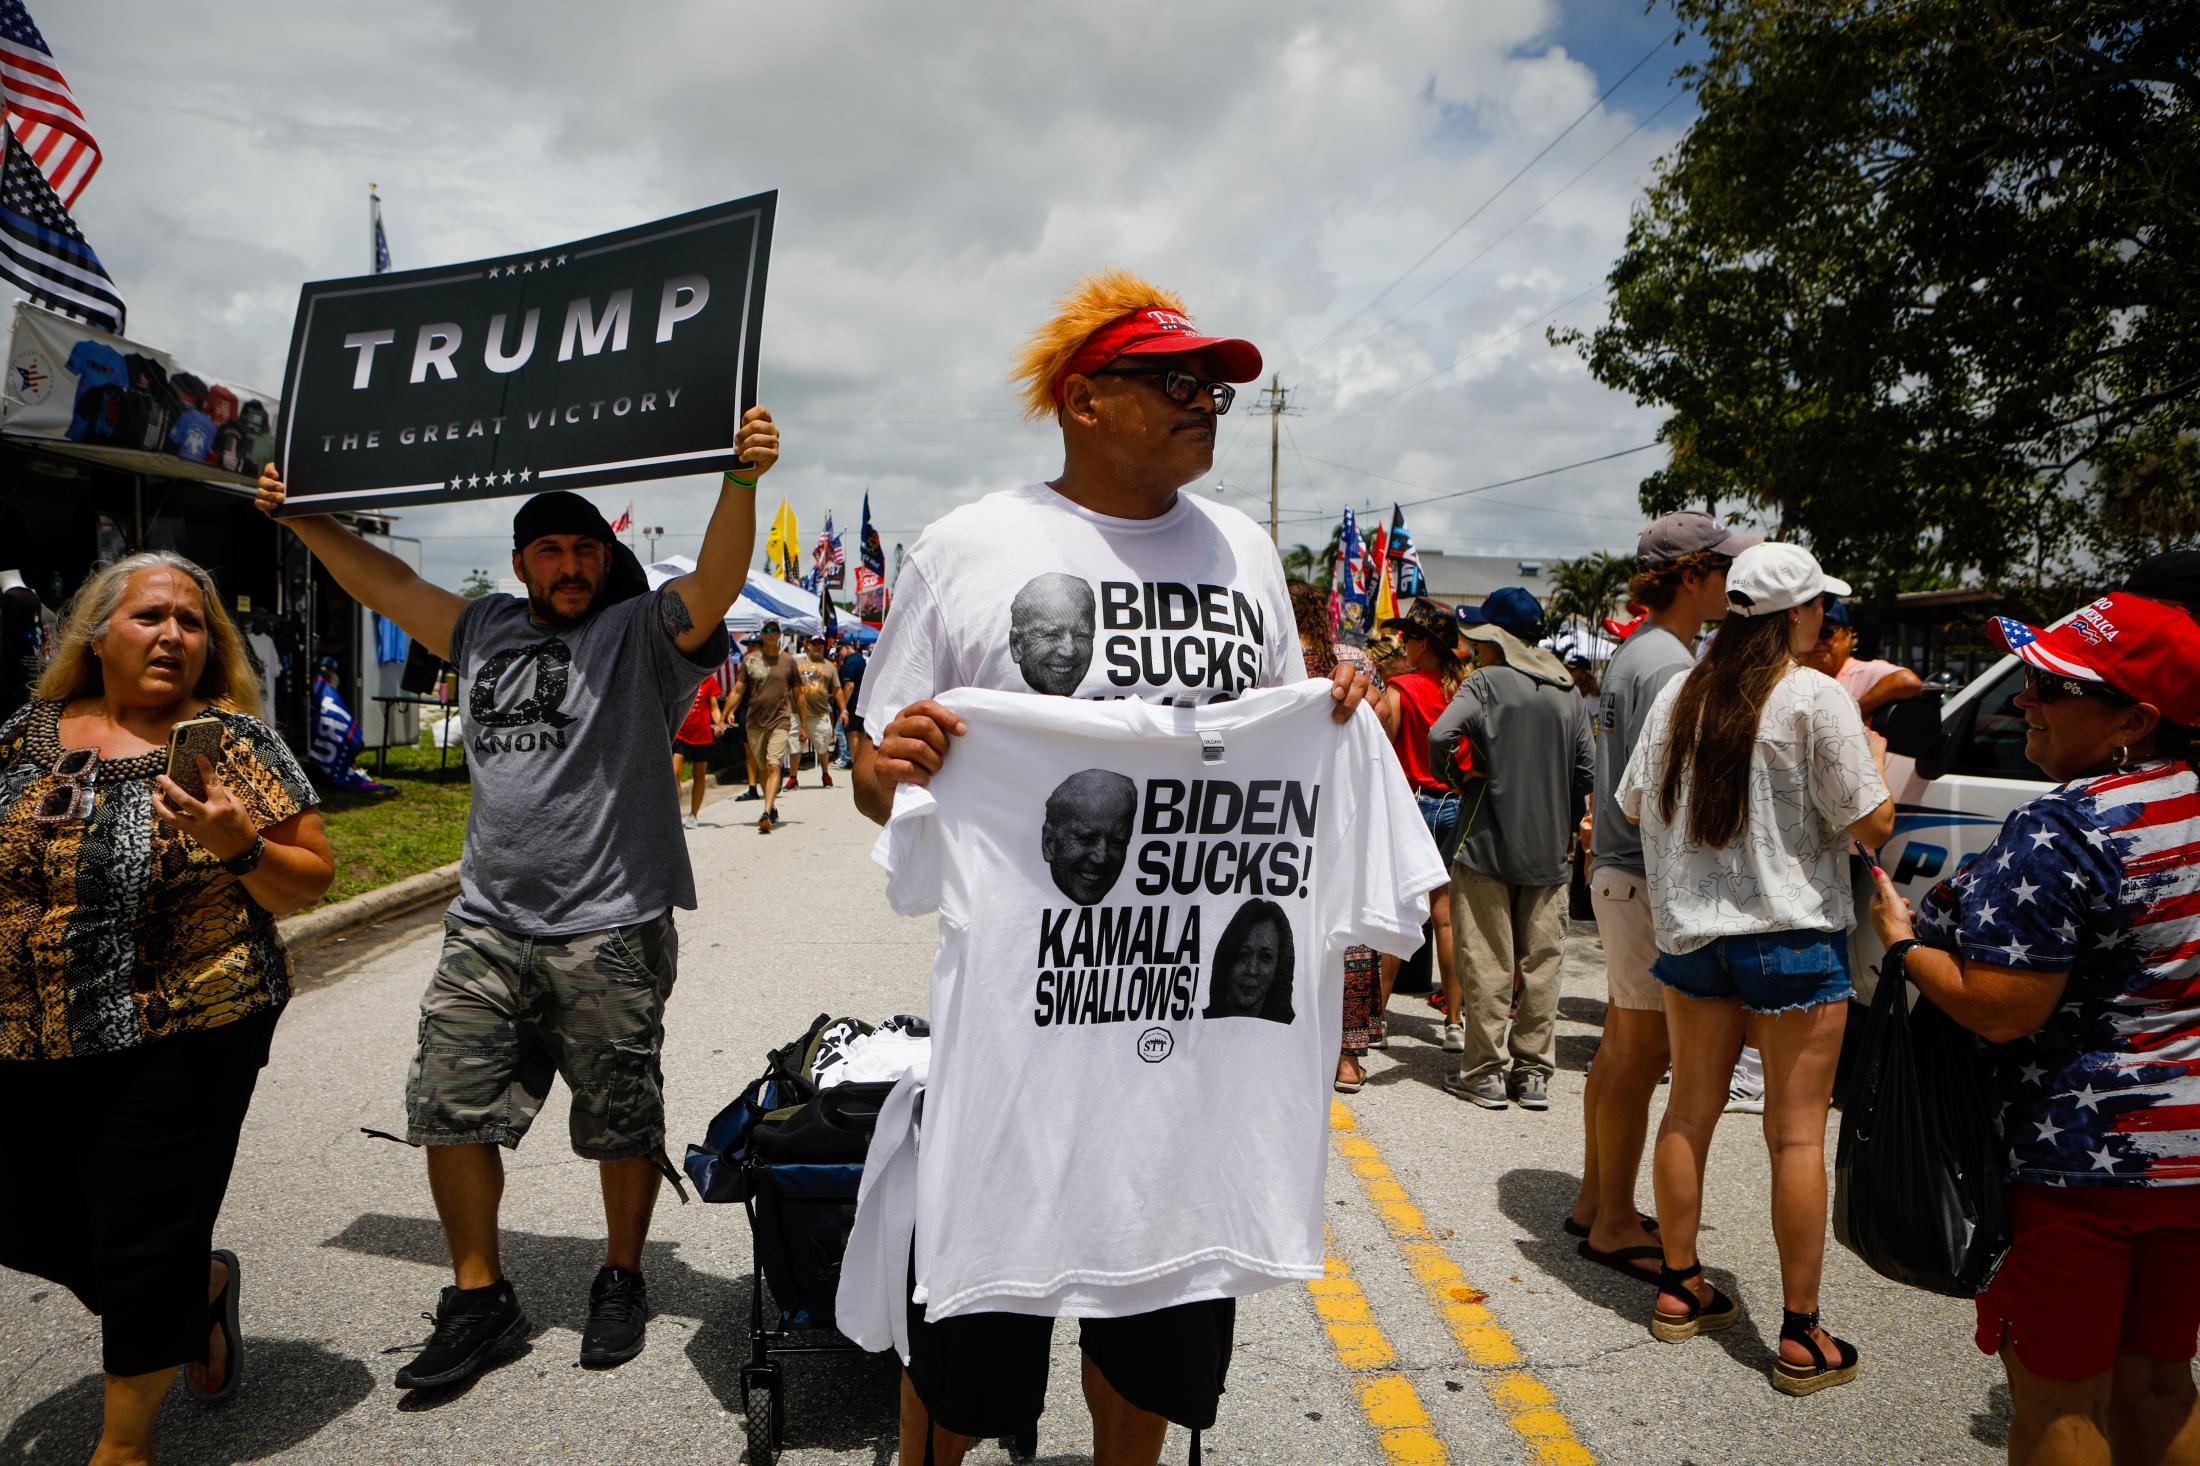 SARASOTA, FL - JULY 03: People wait for the arrival of former U.S. President Donald Trump to a rally on July 3, 2021 in Sarasota, Florida. Former U.S. President Donald J. Trump hold a major rally co-sponsored by the Republican Party of Florida and marks President Trump's further support of the MAGA agenda and accomplishments of his administration. (Photo by Eva Marie Uzcategui/Getty Images)